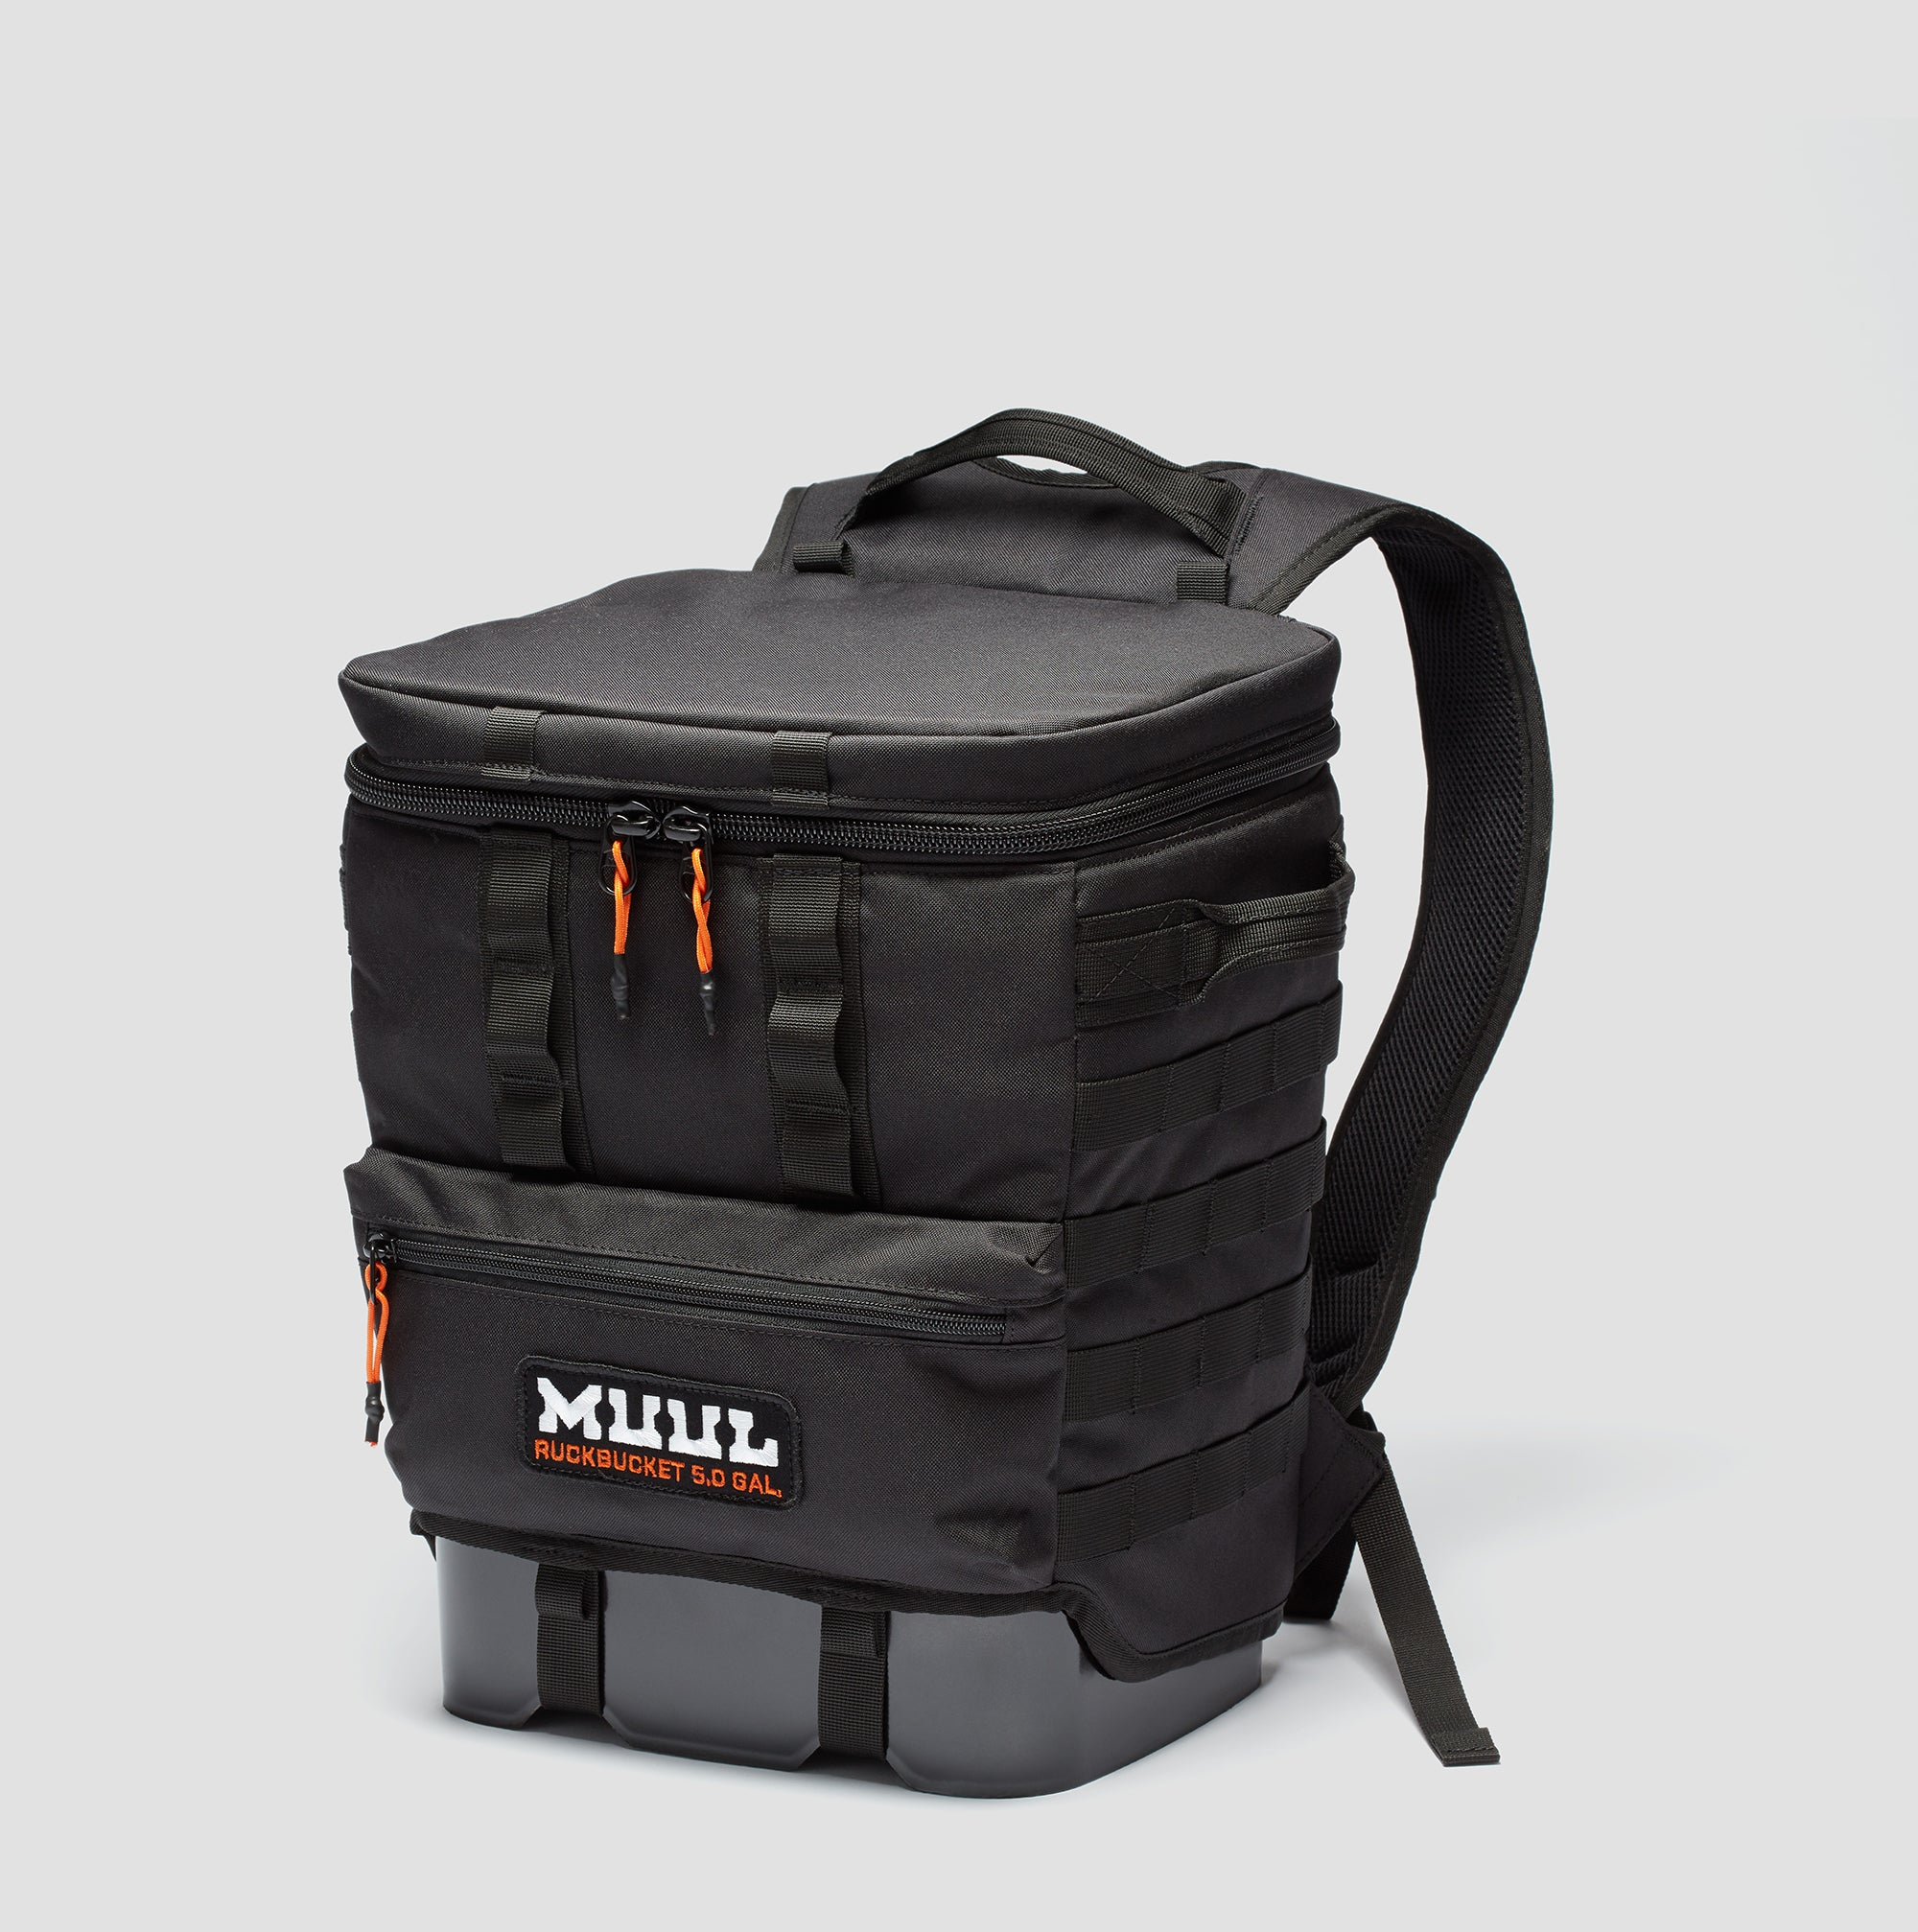 Ruckbucket by MUUL 3/4 angle black closed